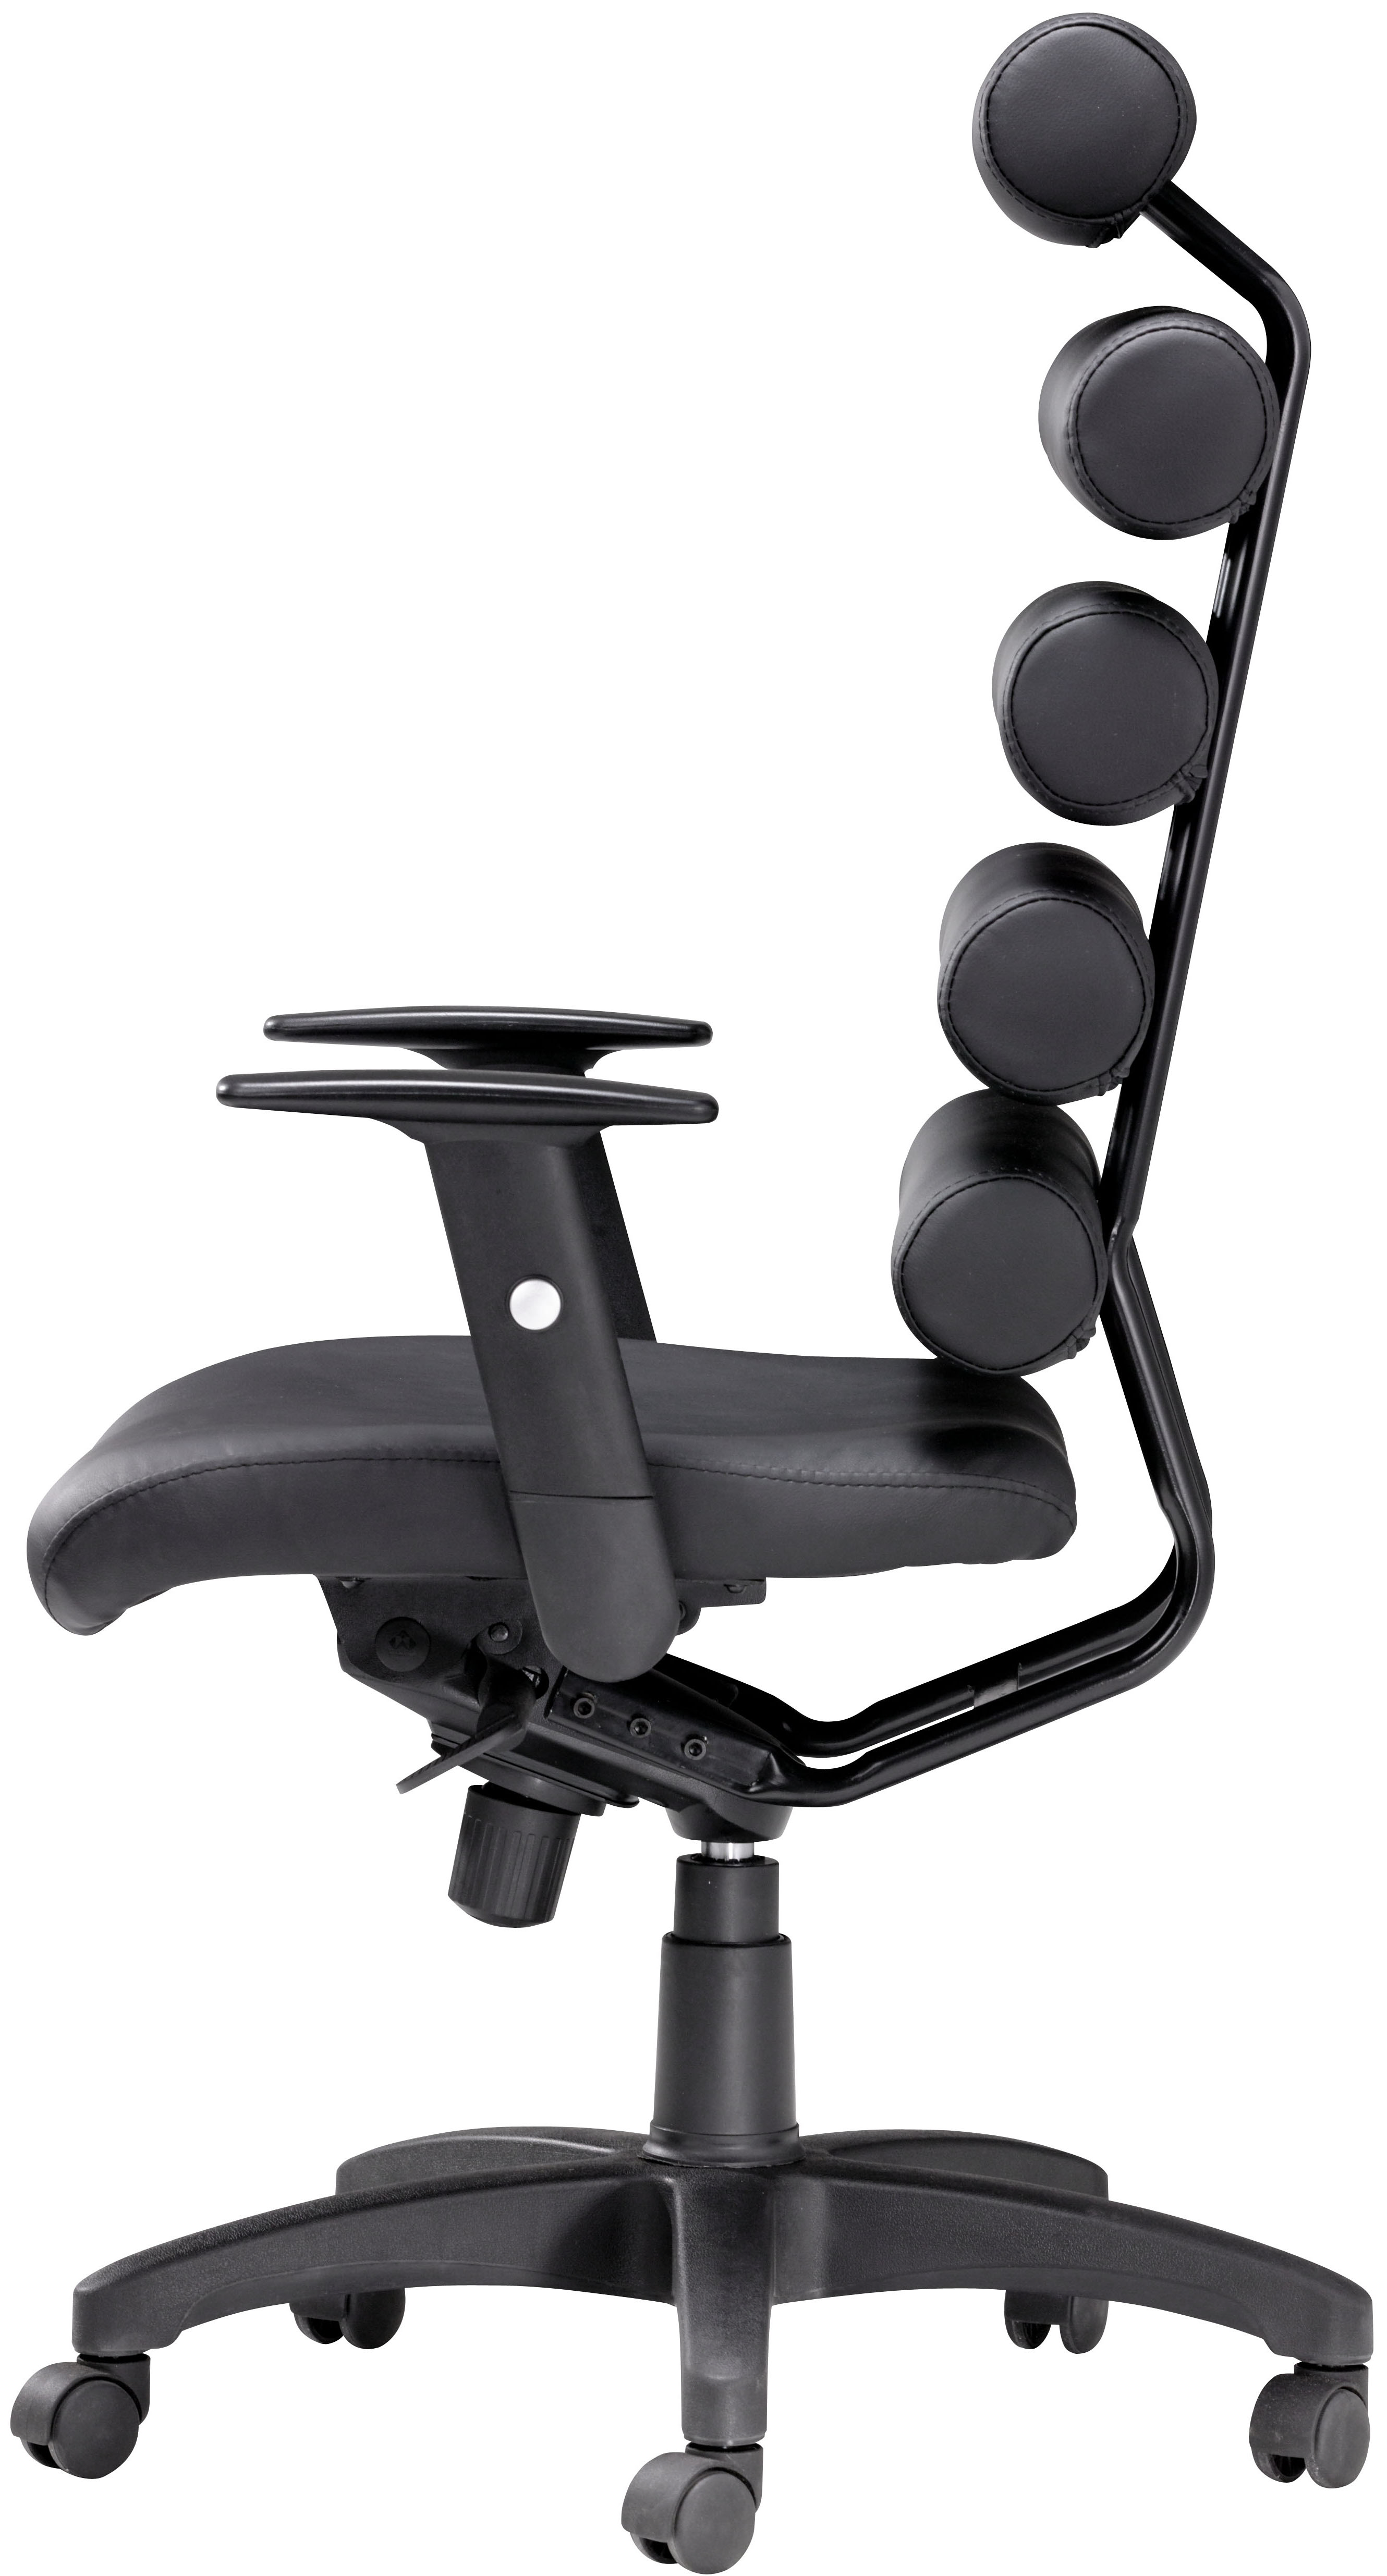 unico office chair. Plain Chair Zuo Unico Office Chair In Black And L